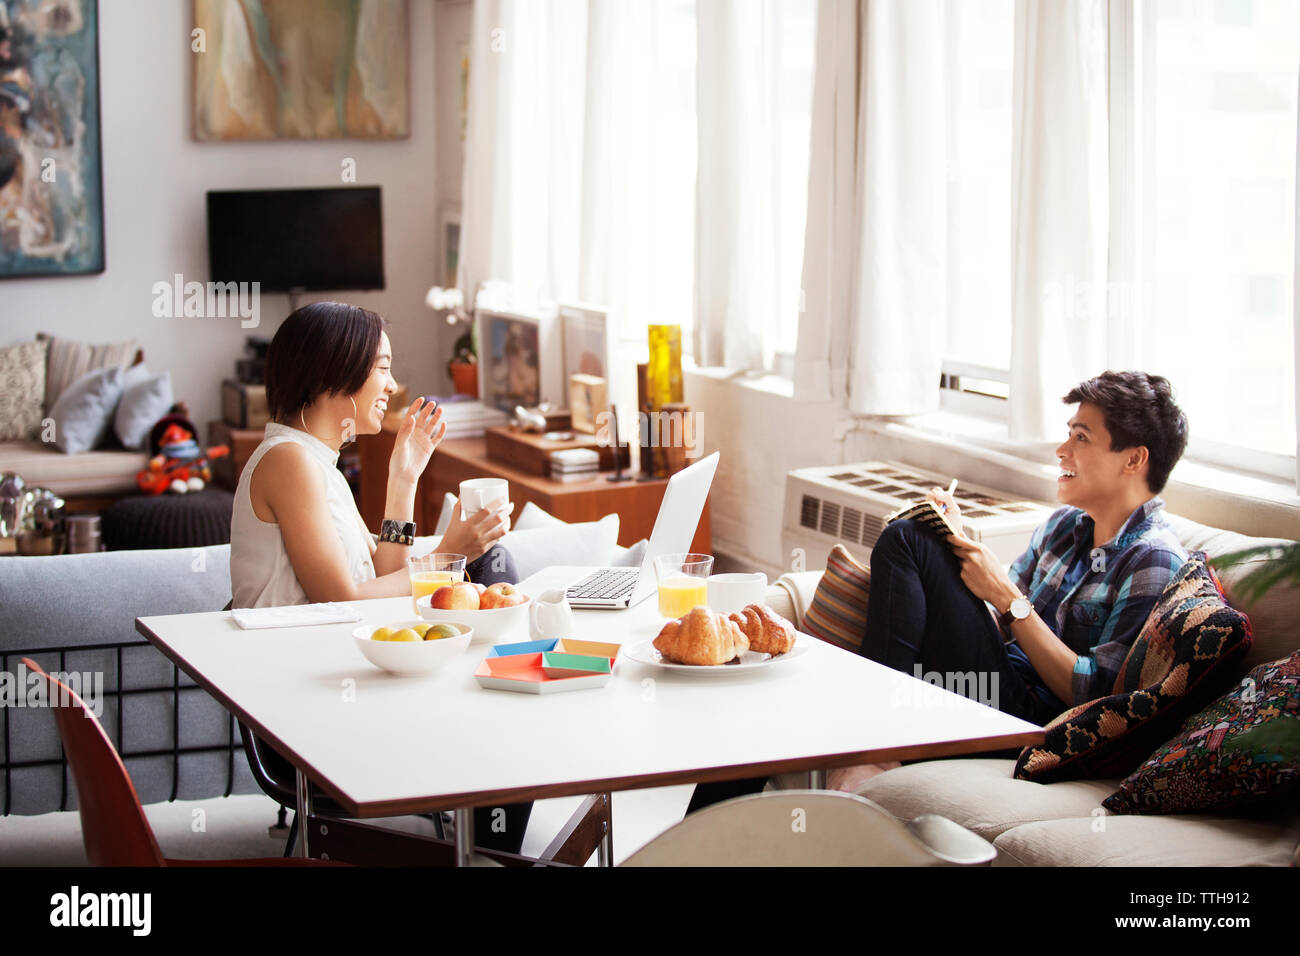 Cheerful couple spending leisure time in living room - Stock Image